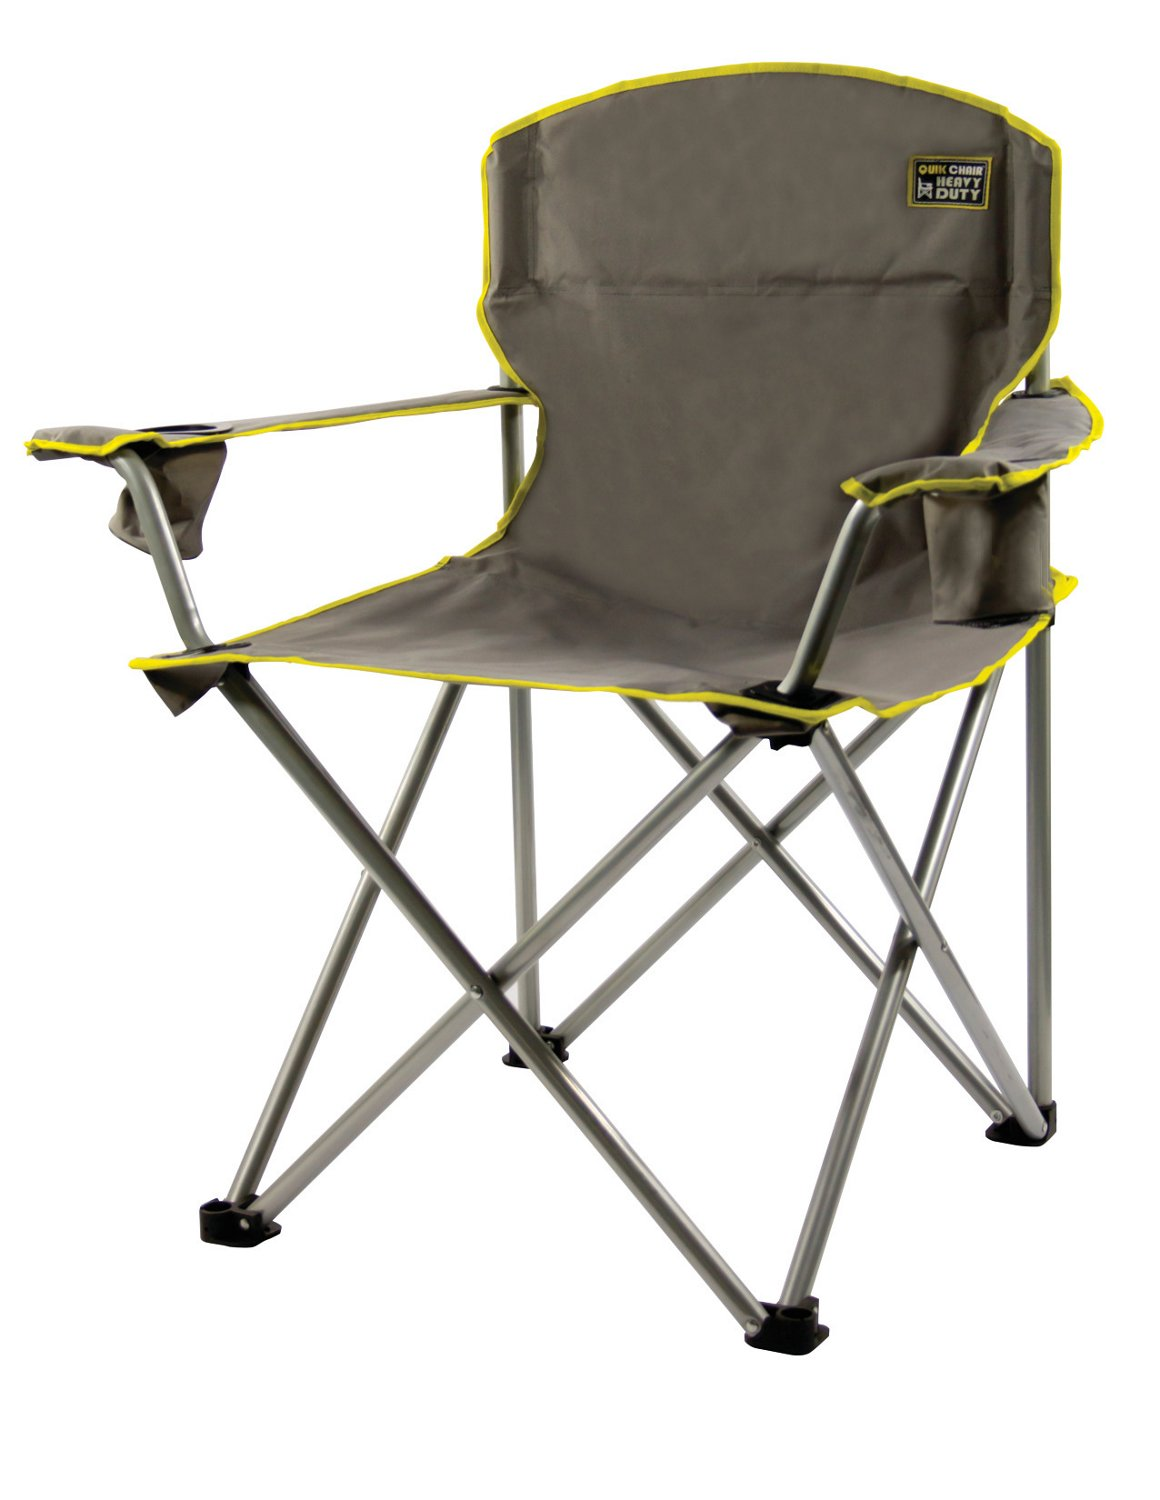 tall fishing chair desk seat cushion folding chairs plastic wooden fabric metal display product reviews for quik shade 1 4 ton heavy duty camping